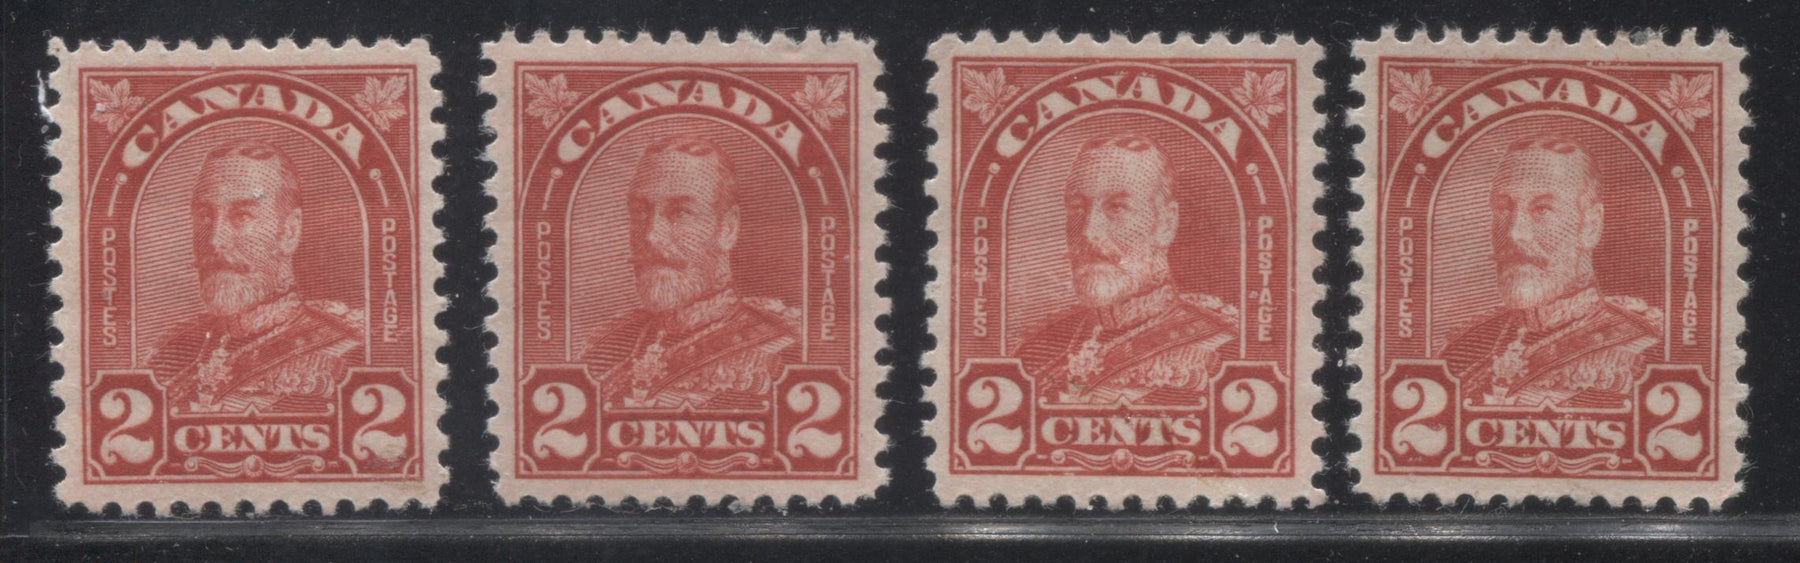 Canada #165-165a 2c Scarlet King George V, 1930-1935 Arch Issue, Four Very Fine Mint Singles, Two of Each Die Brixton Chrome